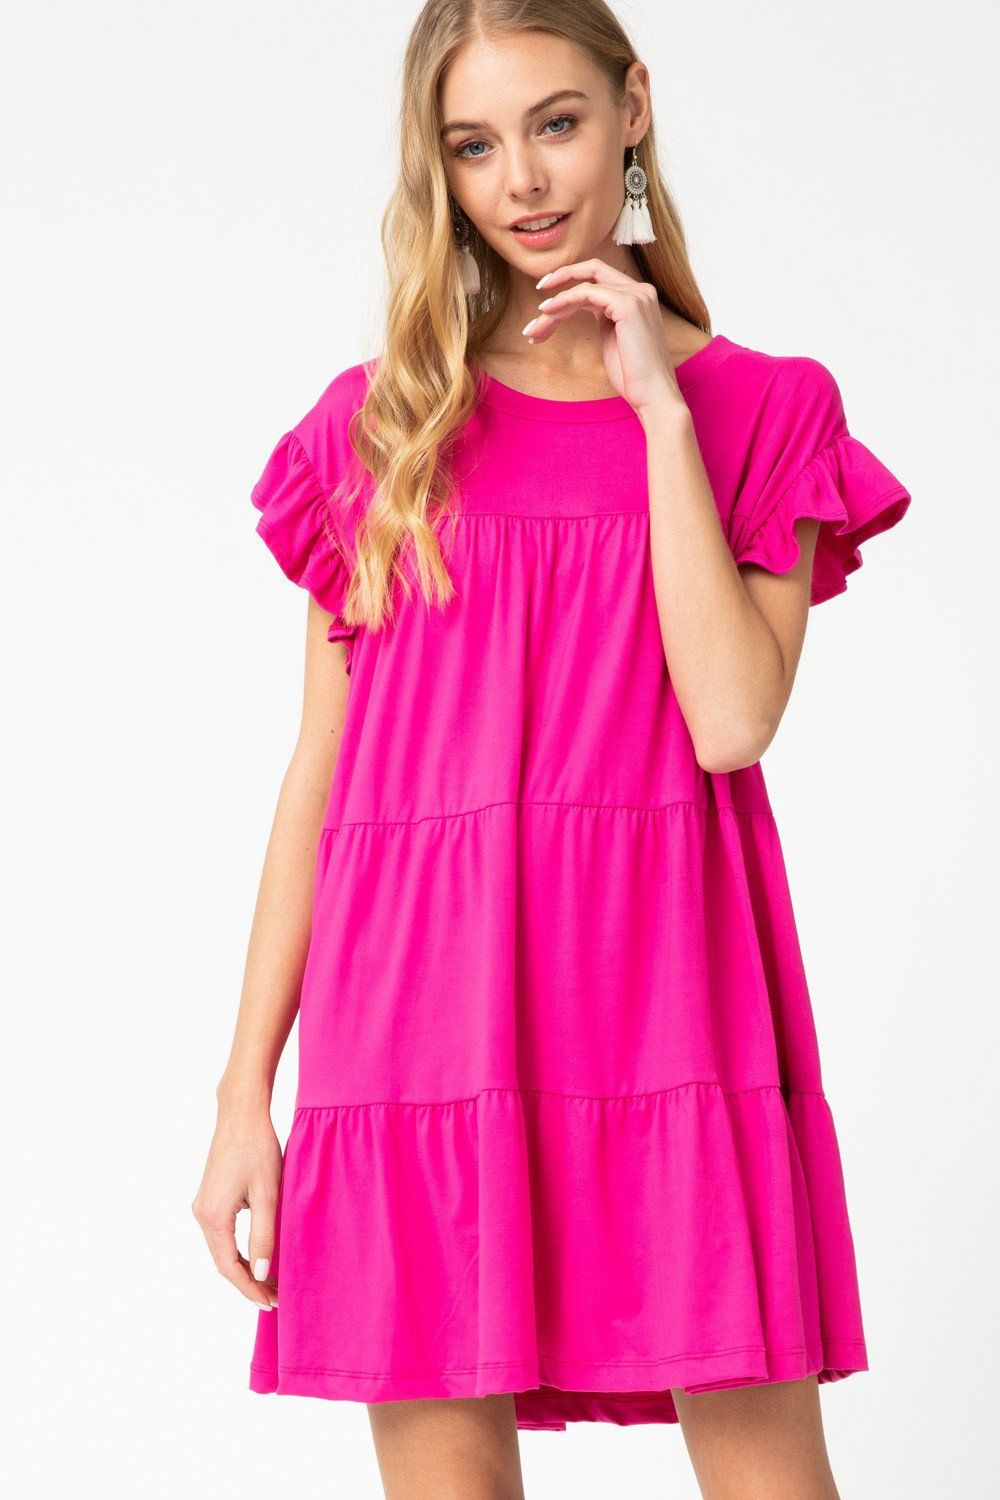 Simply Soft Fuschia Ruffle Dress - Caroline Hill